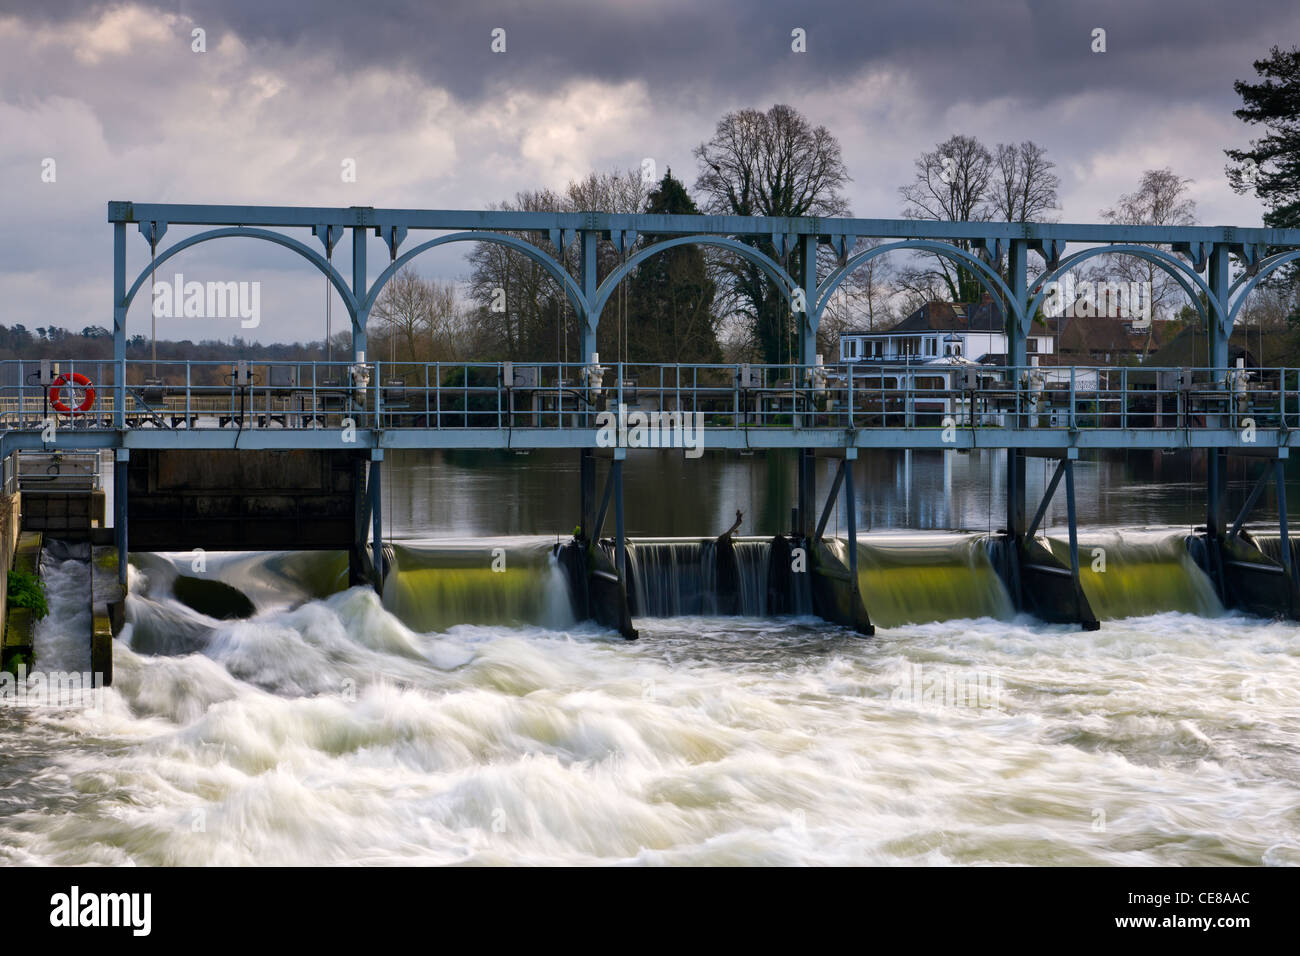 Sluice Gates on the River Thames - Stock Image